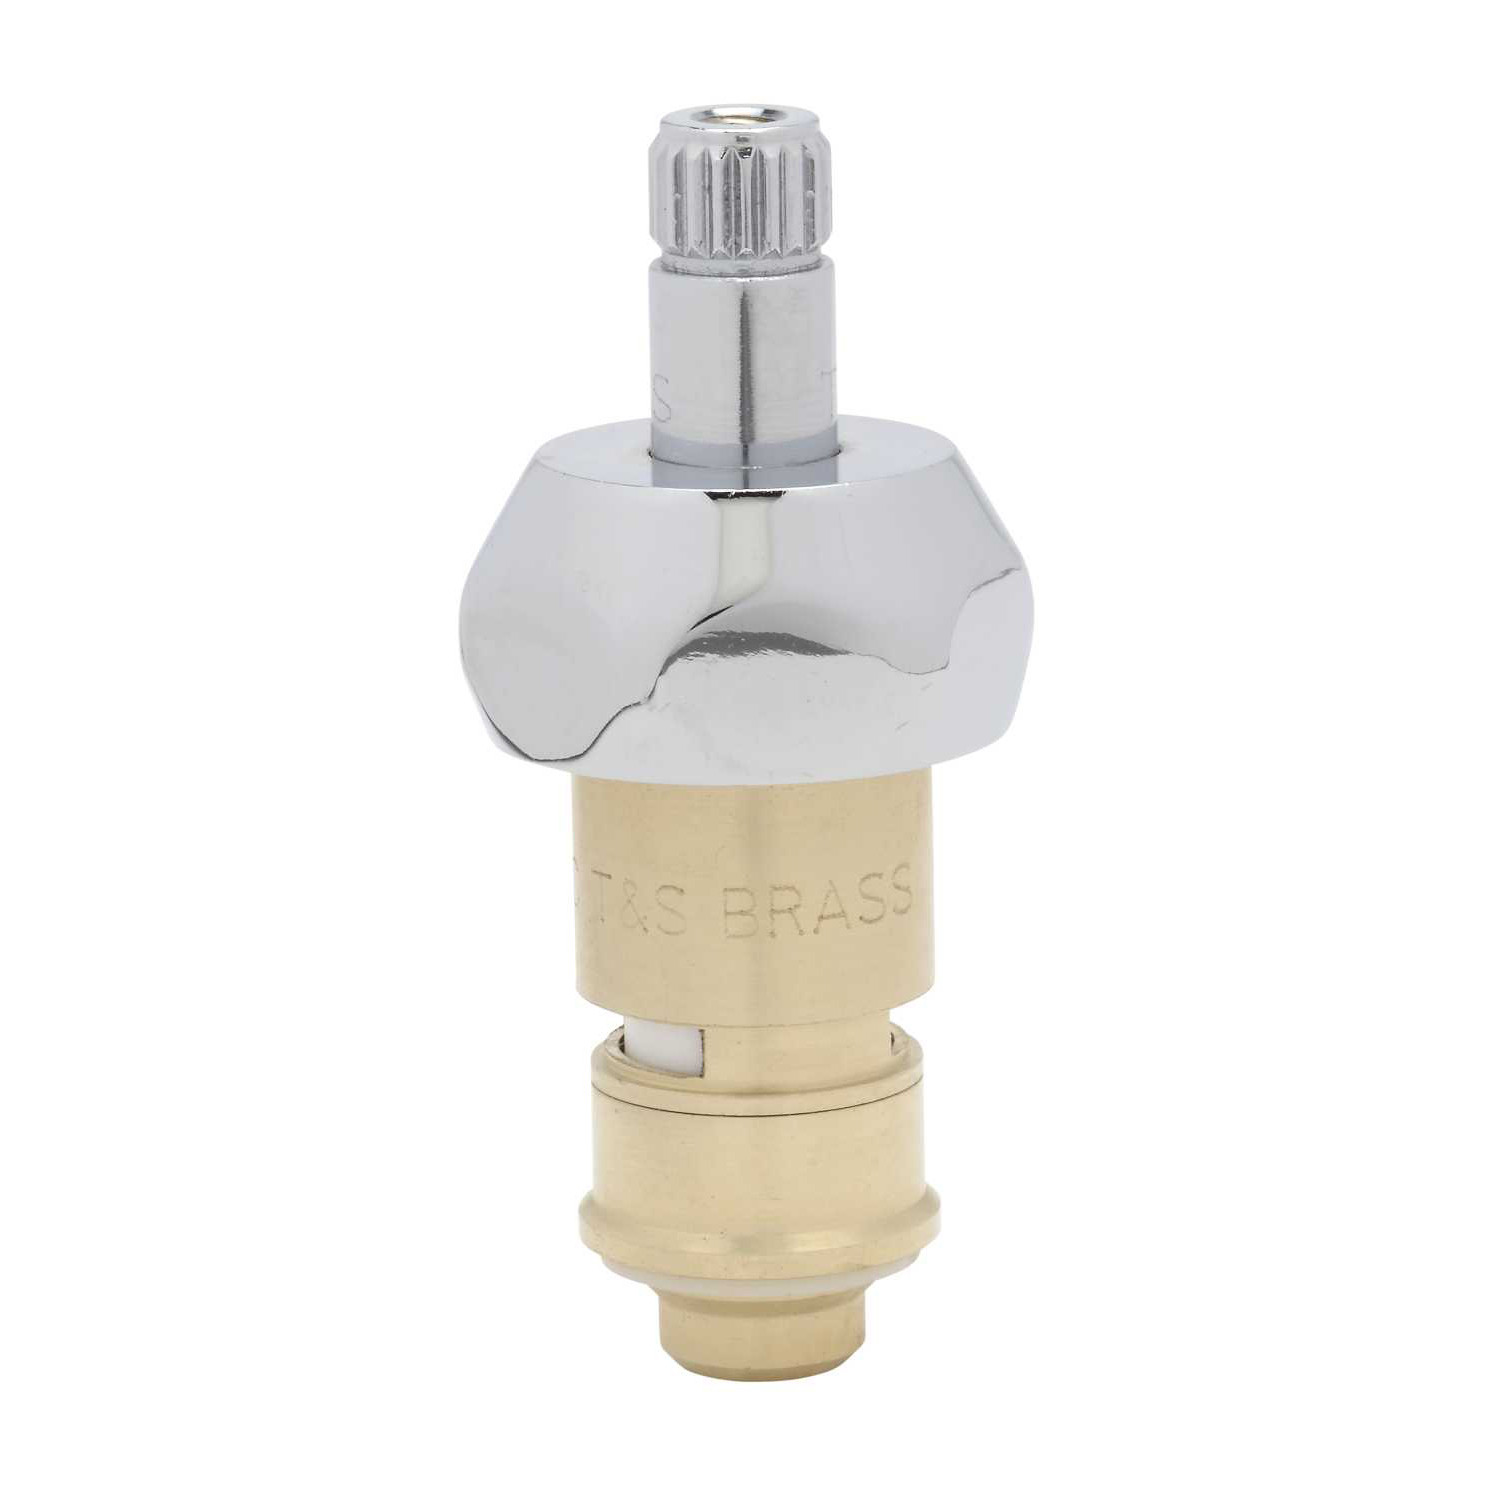 to t faucet variety a adapter of you ts brass perfect models your faucets liking buy offer reference cross that s for interior